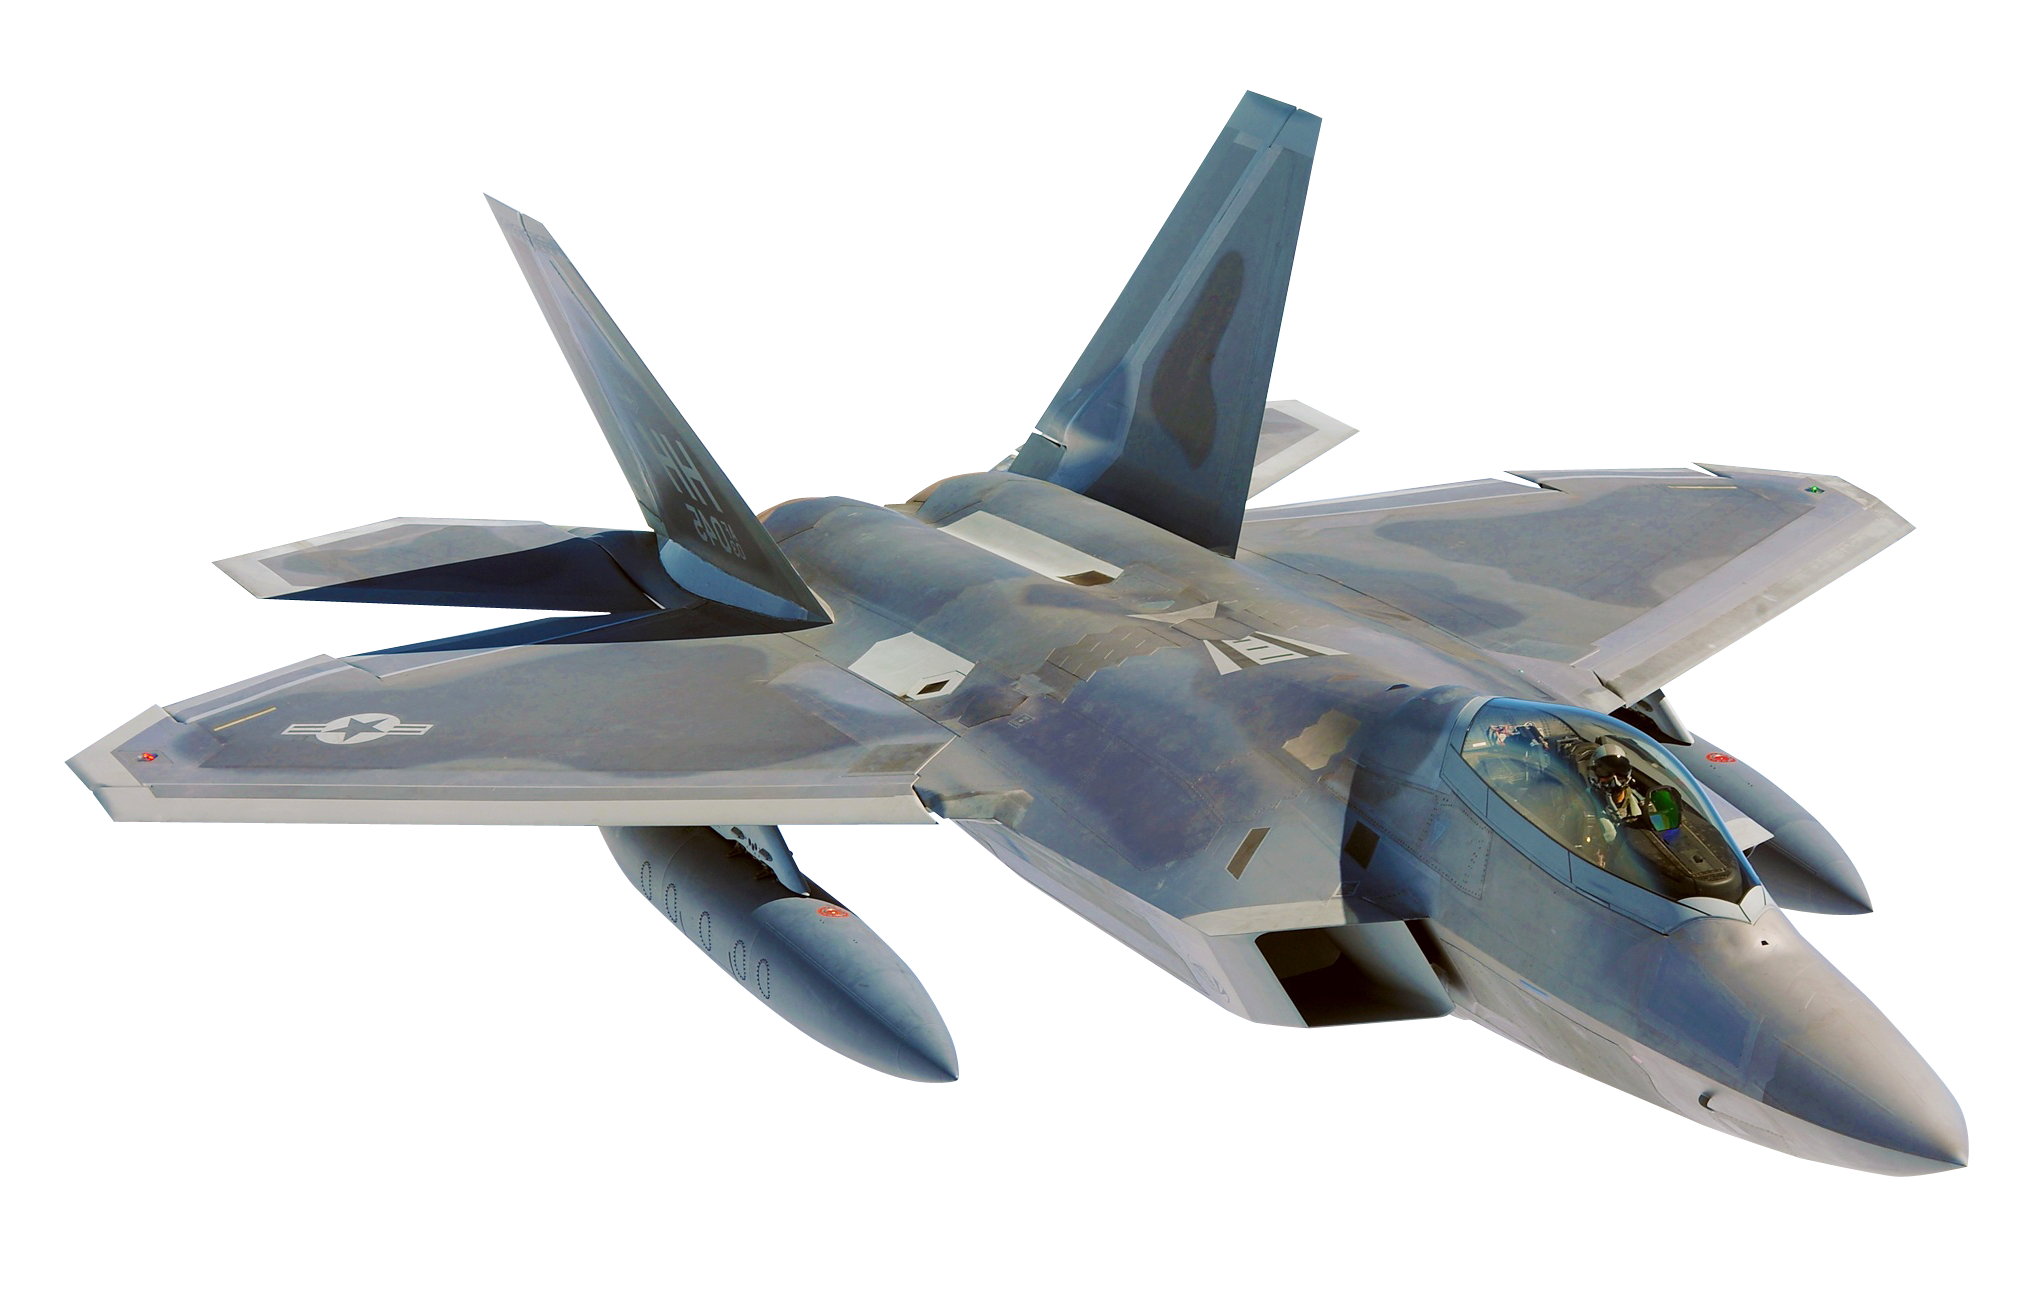 Military aircraft fighter transparent. Jet clipart battle plane